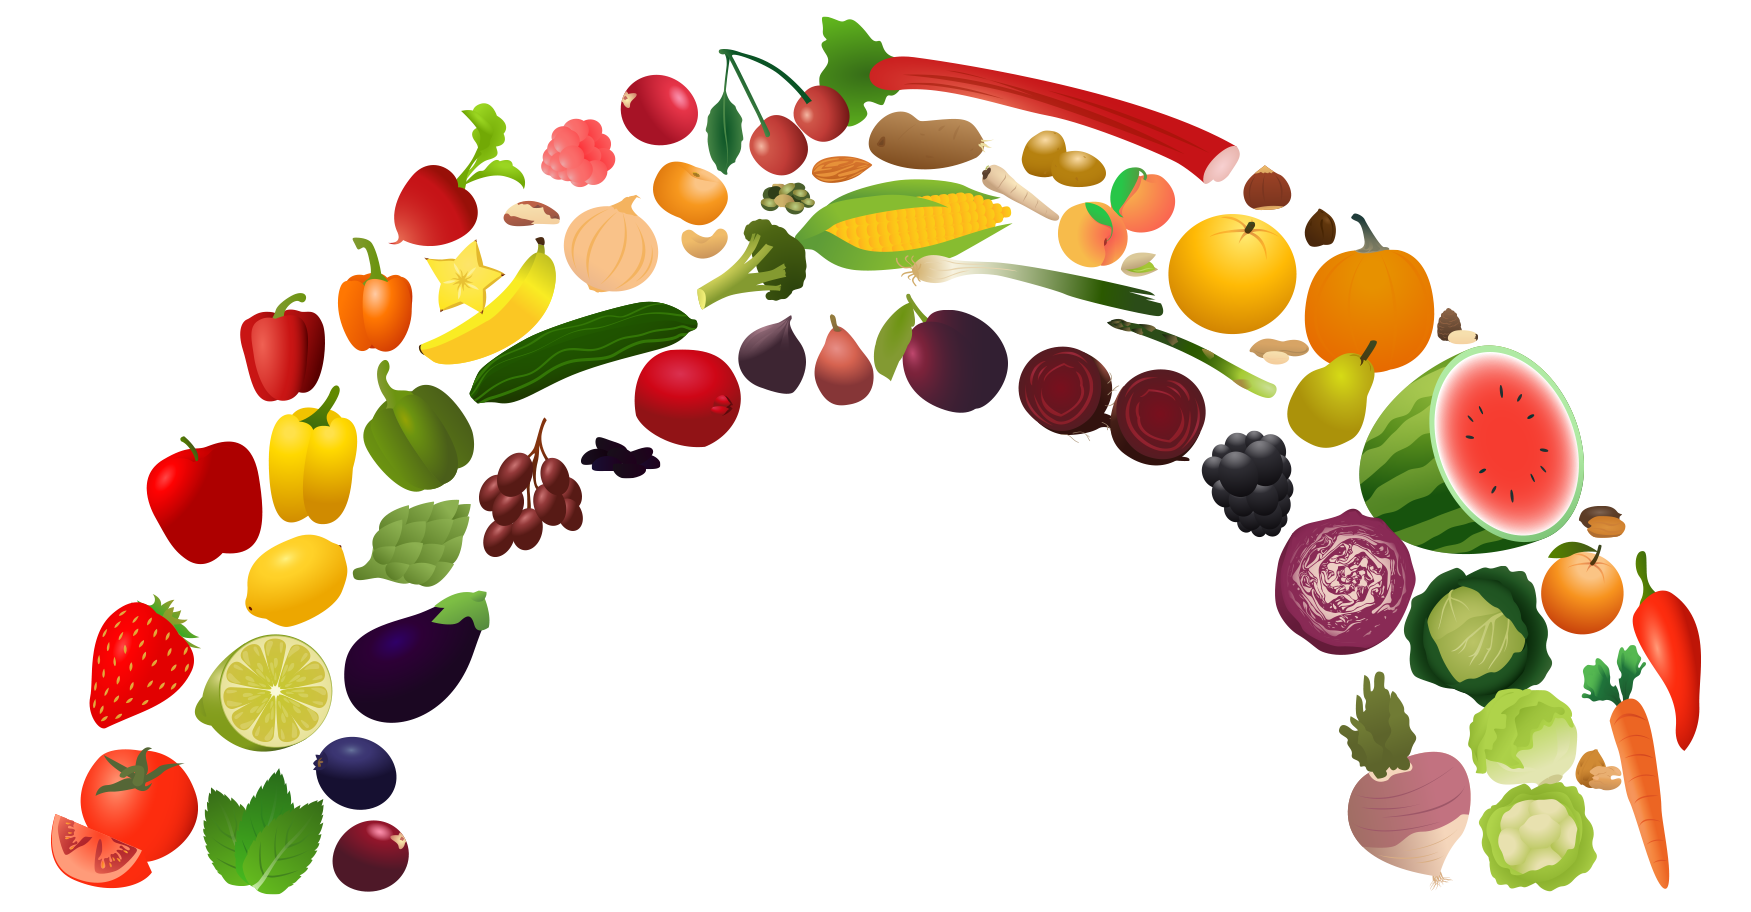 Healthy png transparent free. Health clipart nutritional food